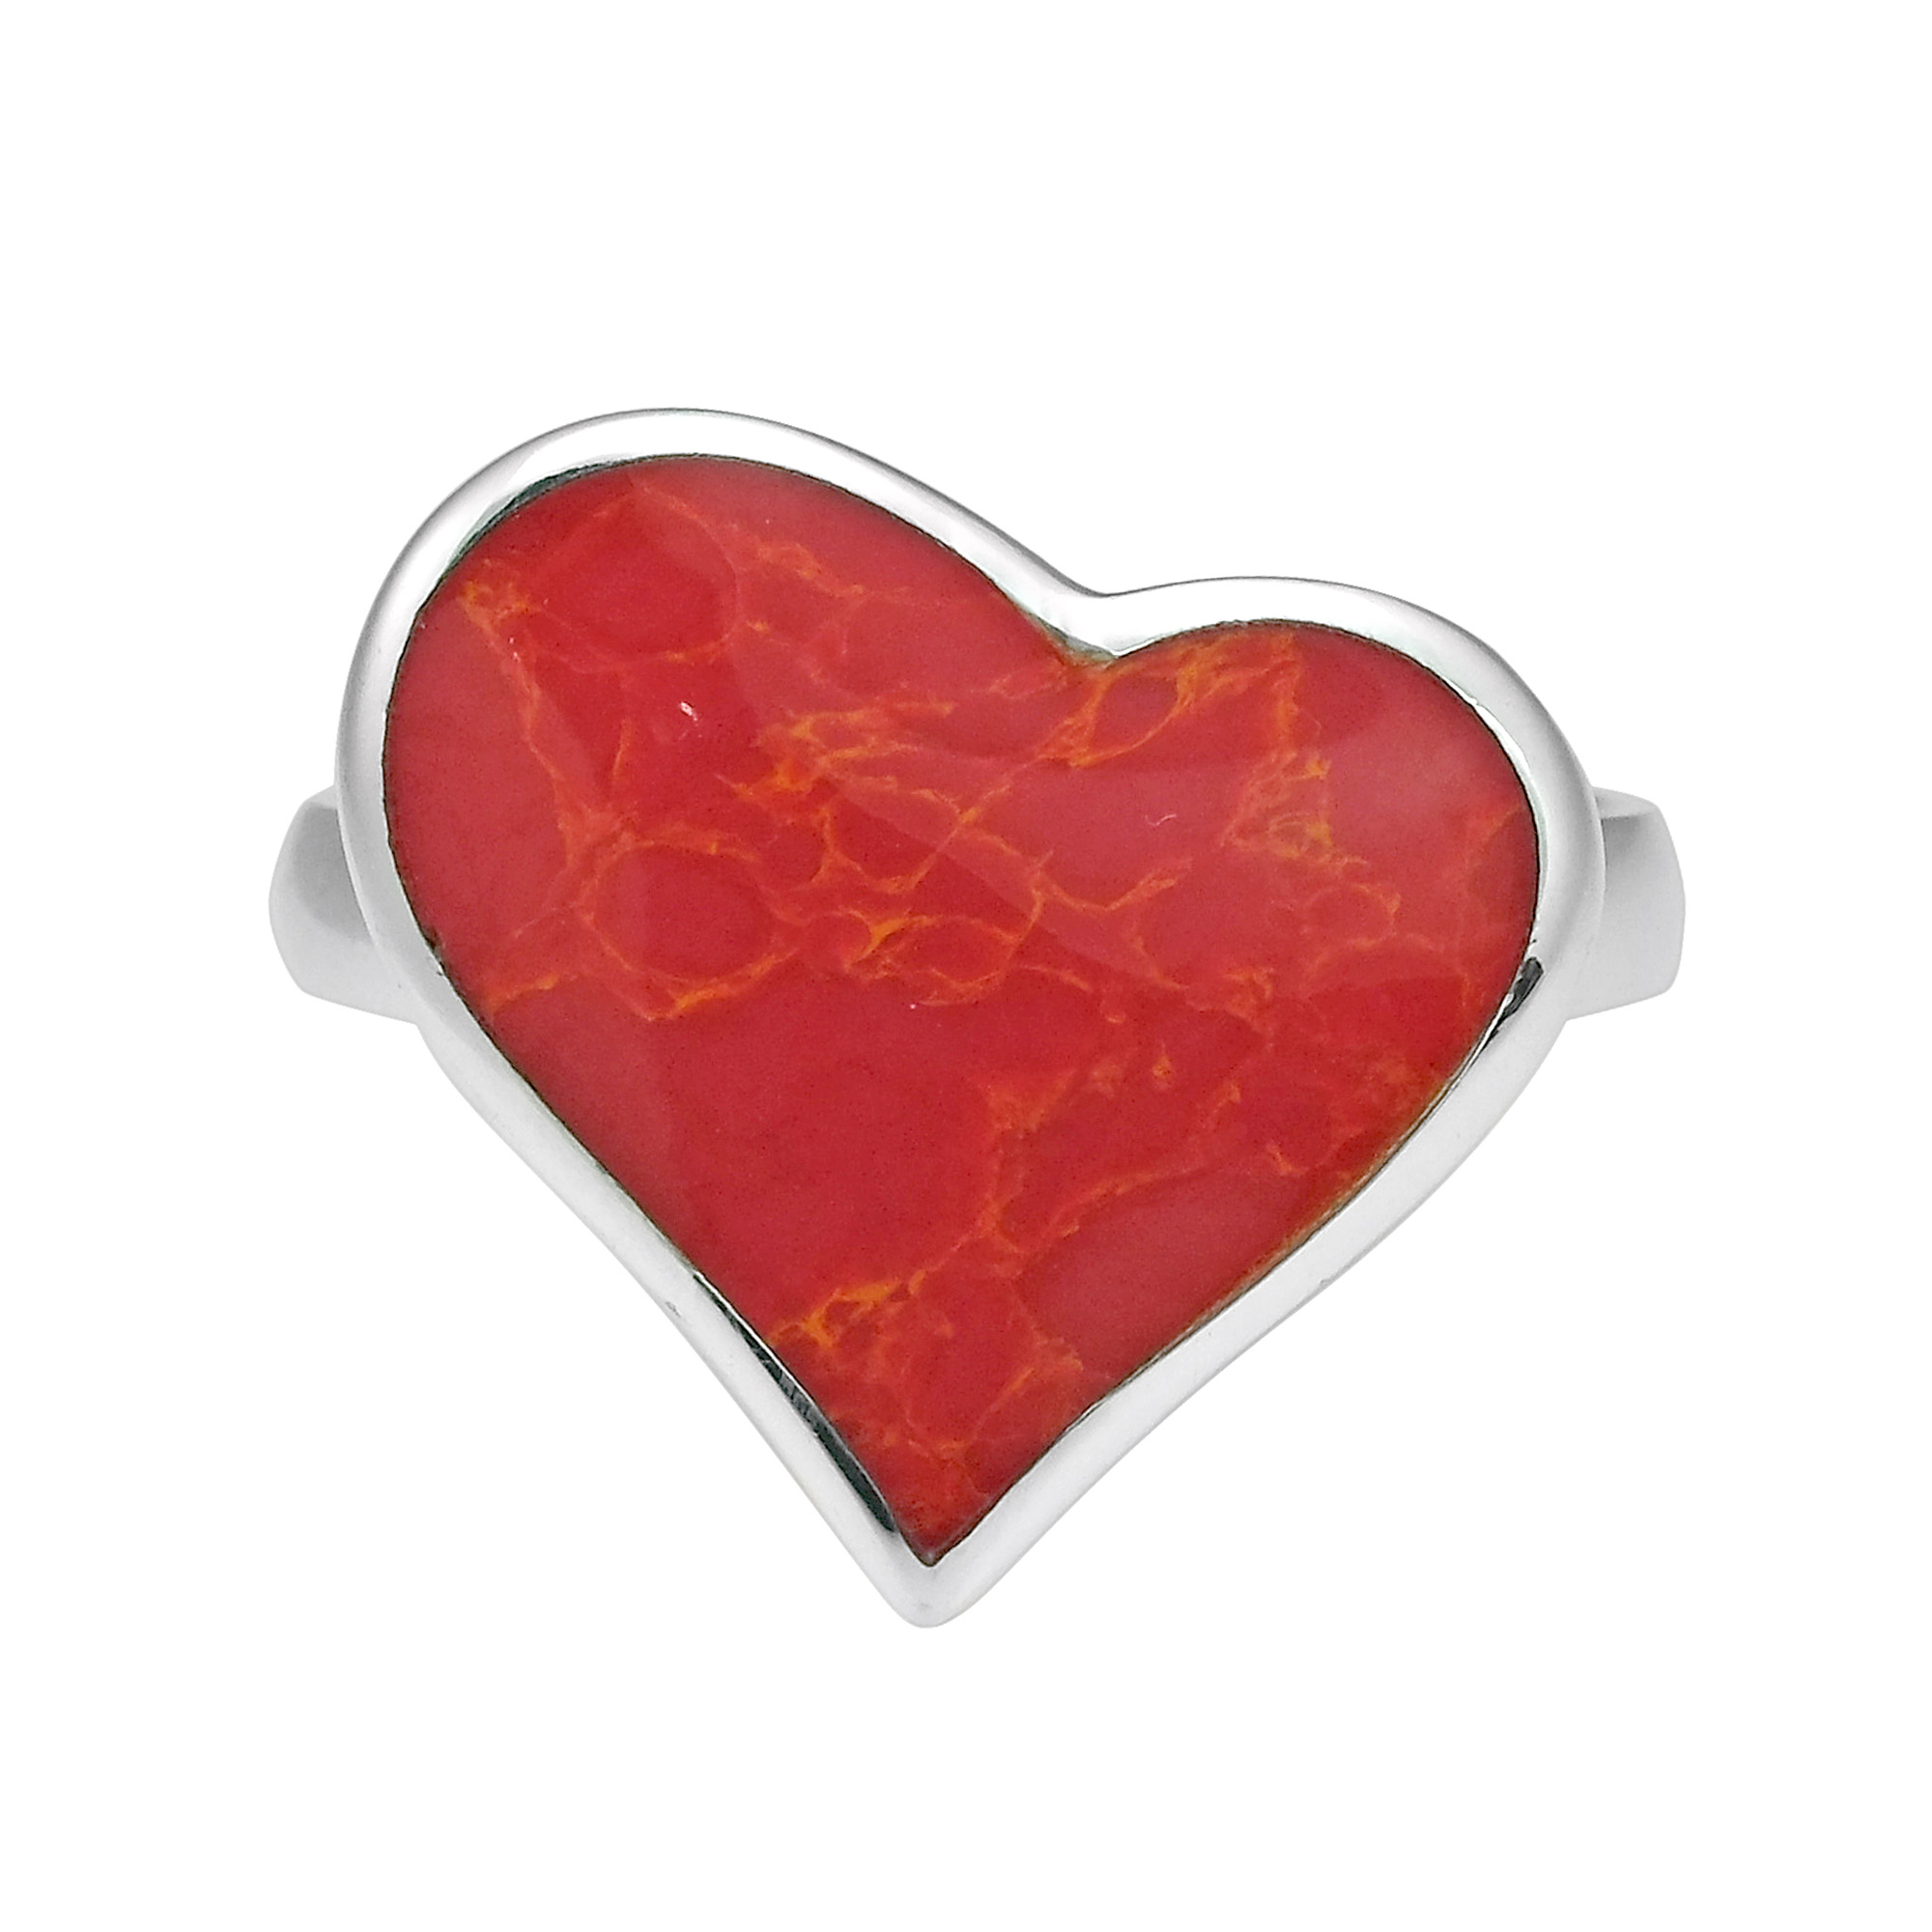 Heart Of Compassion Red Coral Inlay Sterling Silver Ring 6